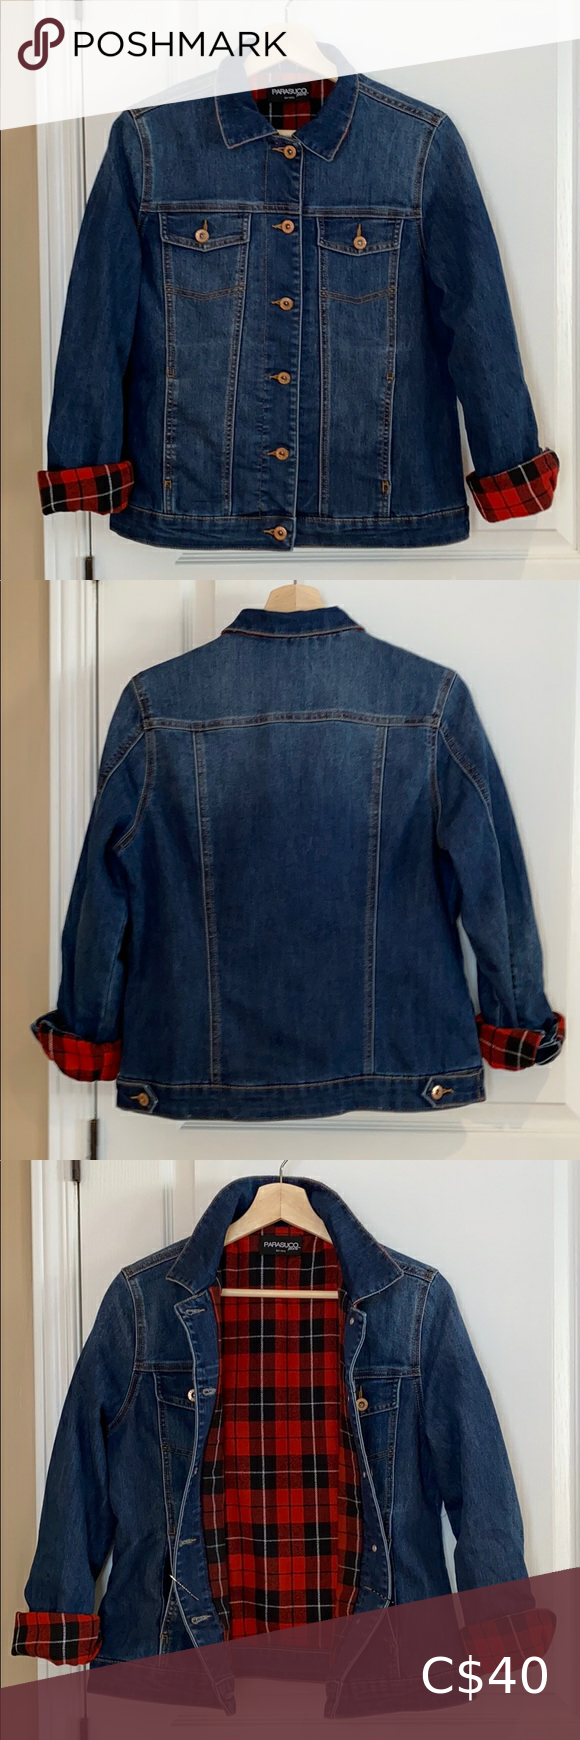 Nwot Parasuco Jeans Insulated Jean Jacket Insulated Jeans Parasuco Jeans Jean Jacket [ 1740 x 580 Pixel ]